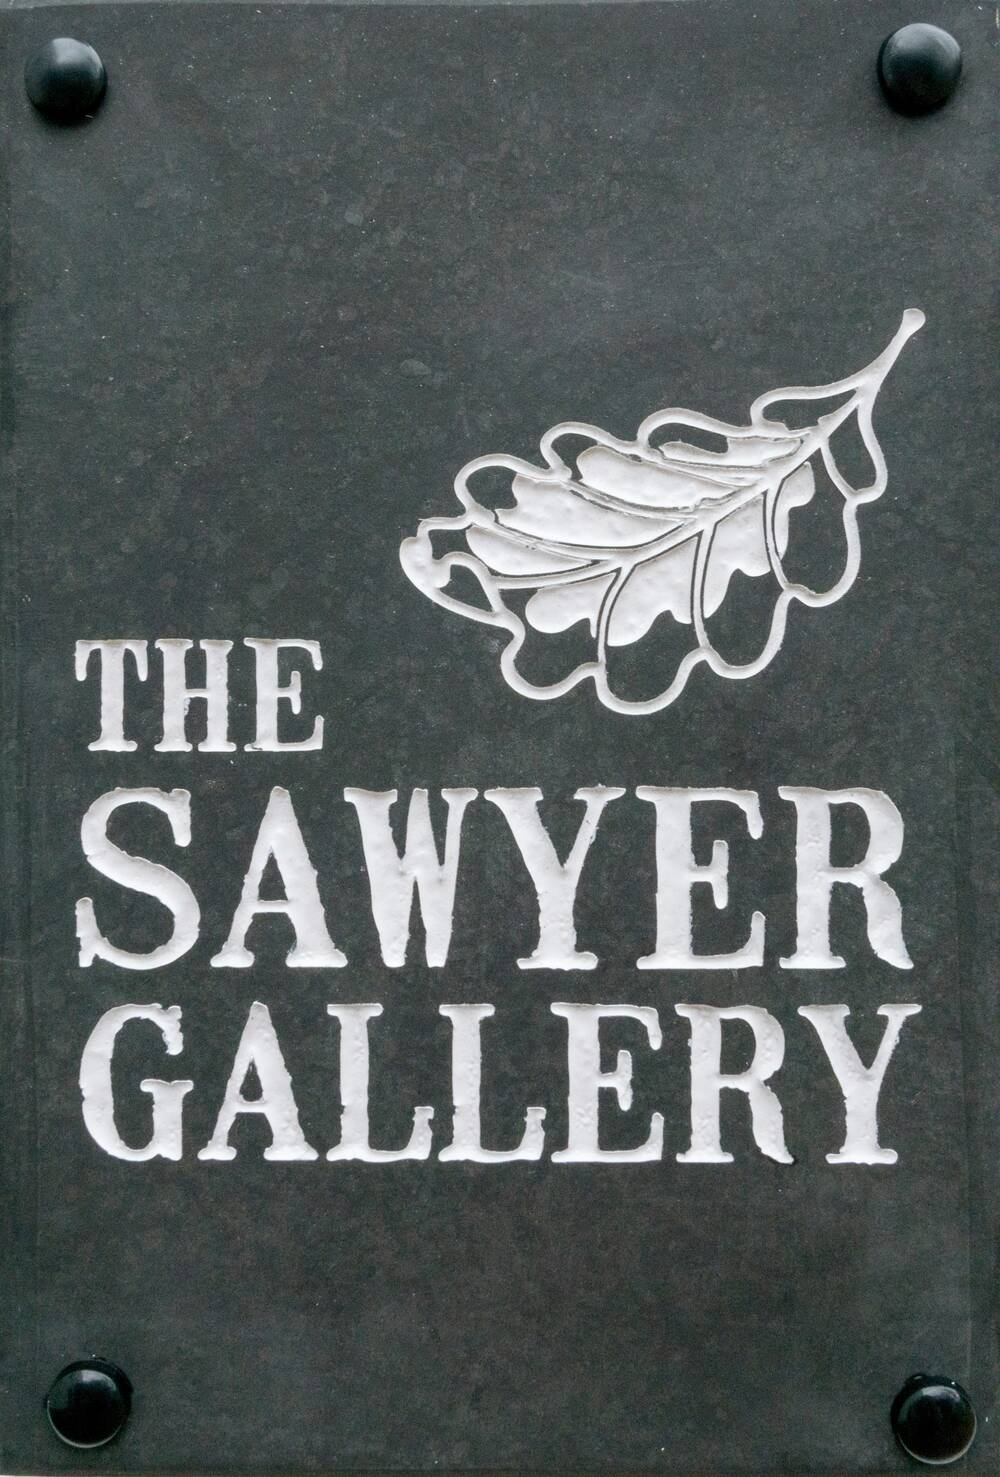 The sign for the Sawyer Gallery, featuring white text on a slate background with a leaf silhouette.